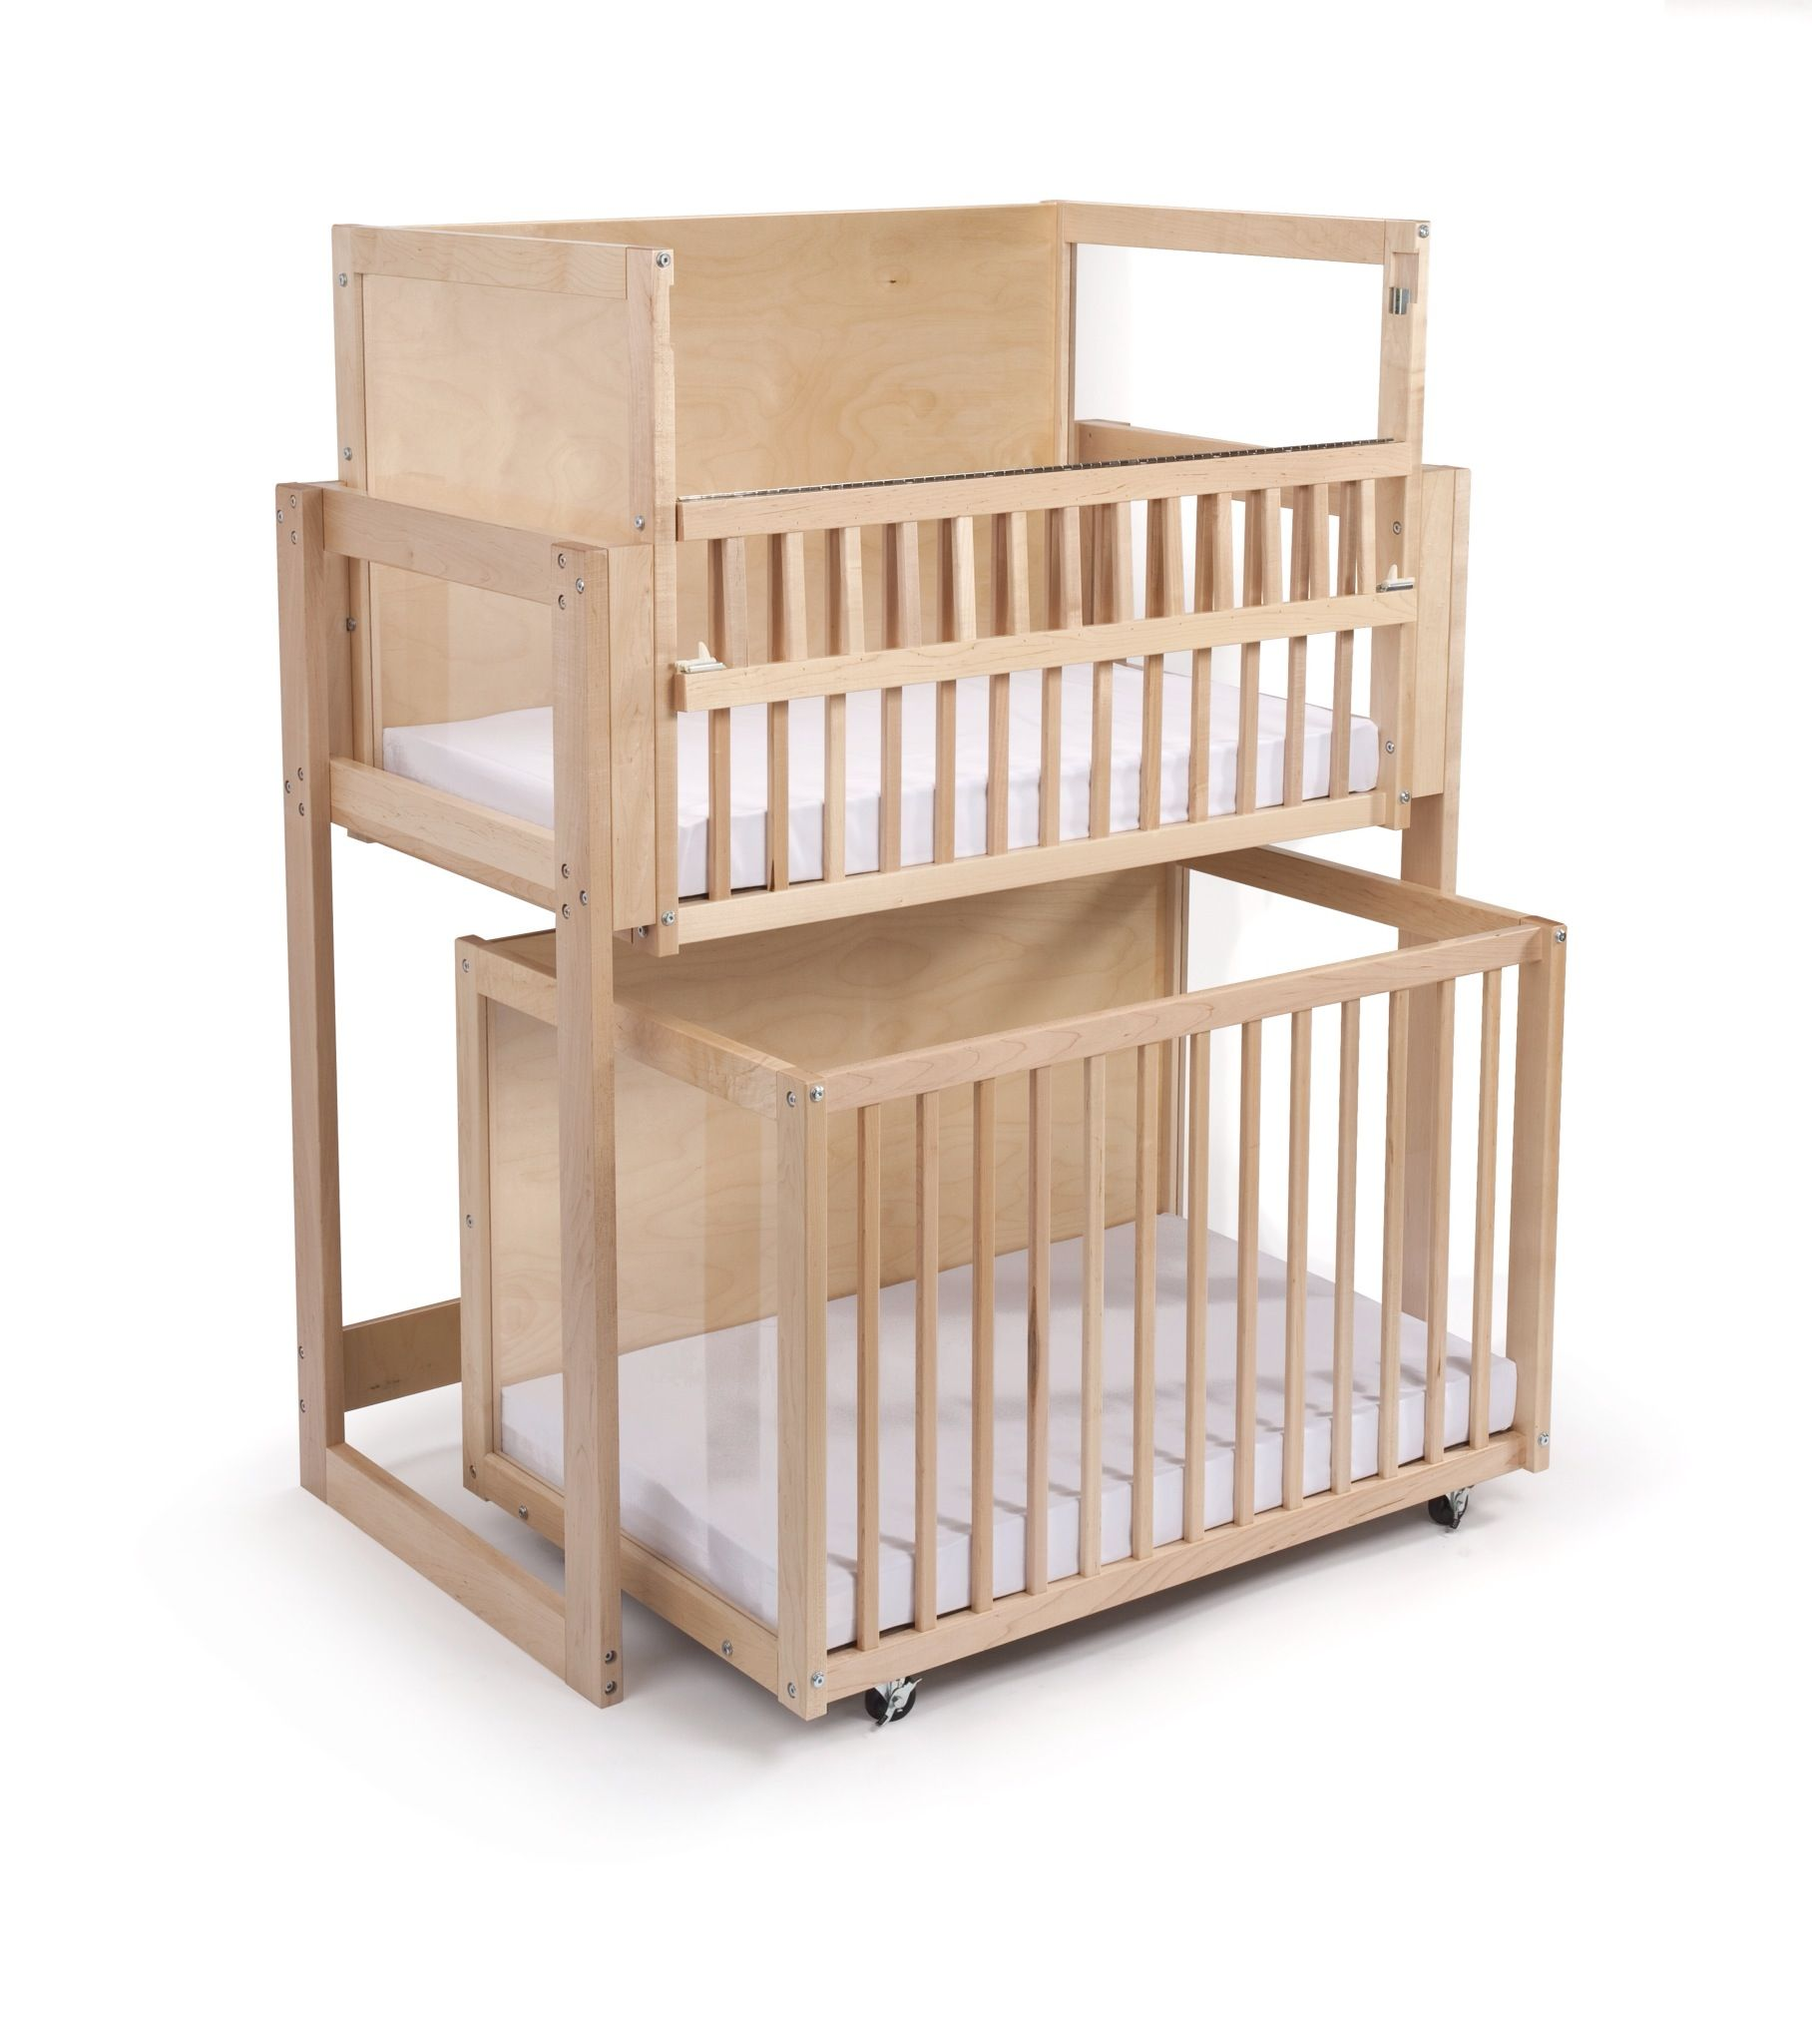 Baby bed extension uk - Double Decker Bunk Bed Stacked Cribs Must Save Space Right